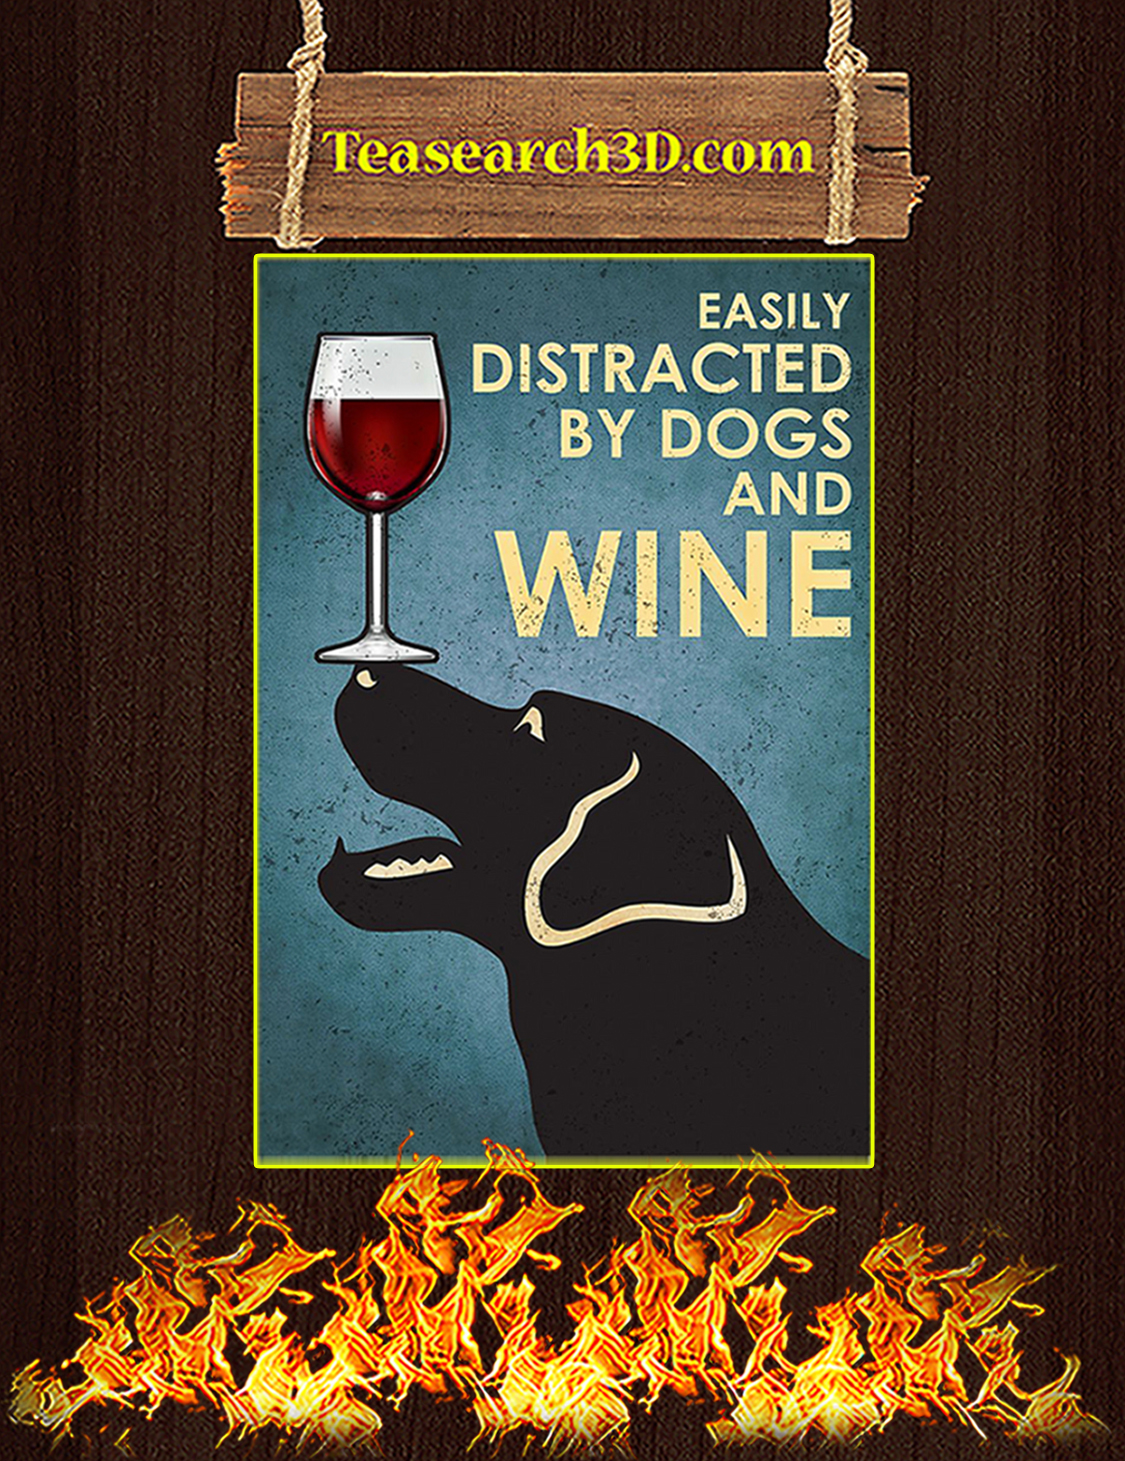 Easily distracted by dogs and wine poster A3